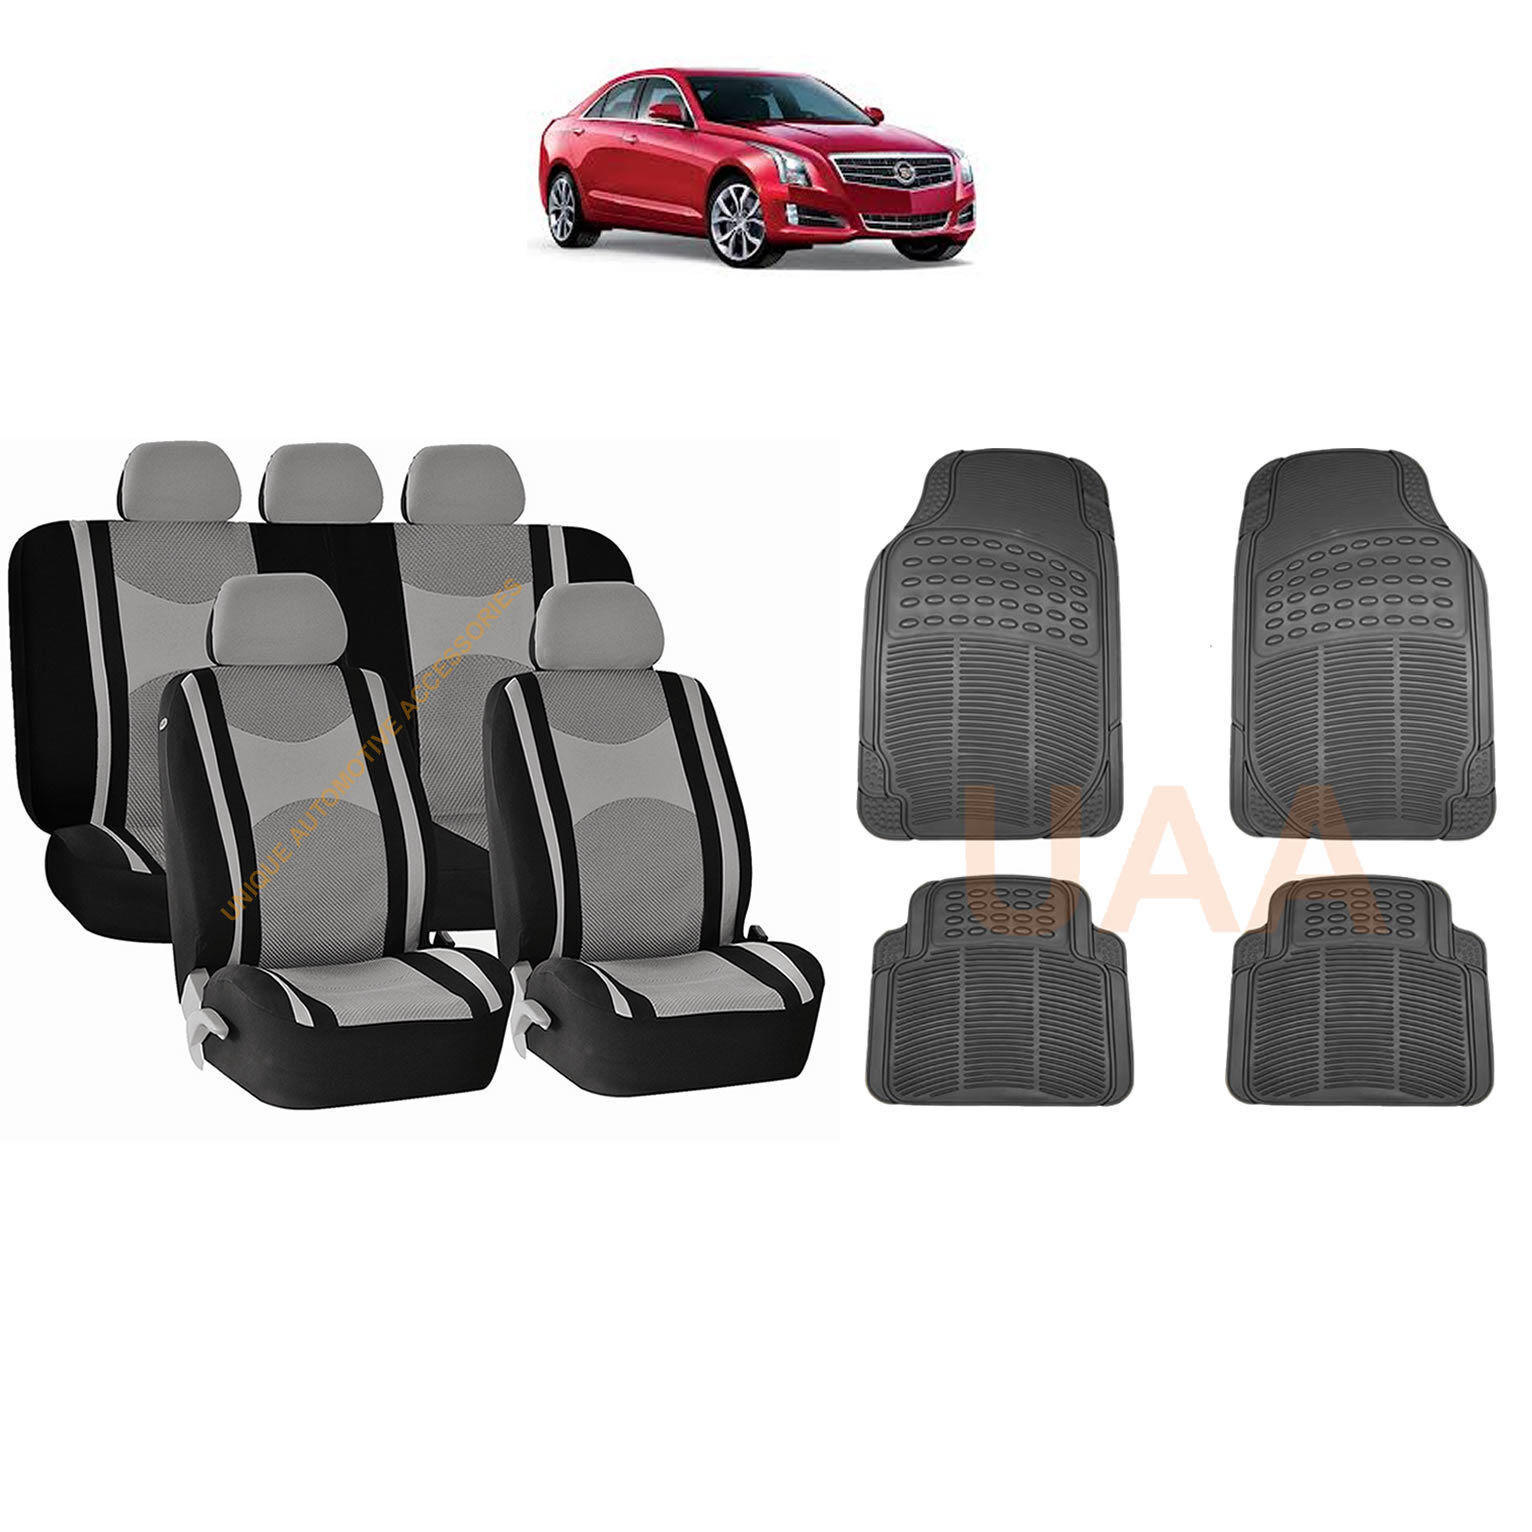 12PC GRAY MESH SEAT COVERS SPLIT BENCH /& BLACK RUBBER MATS FOR CARS 3045